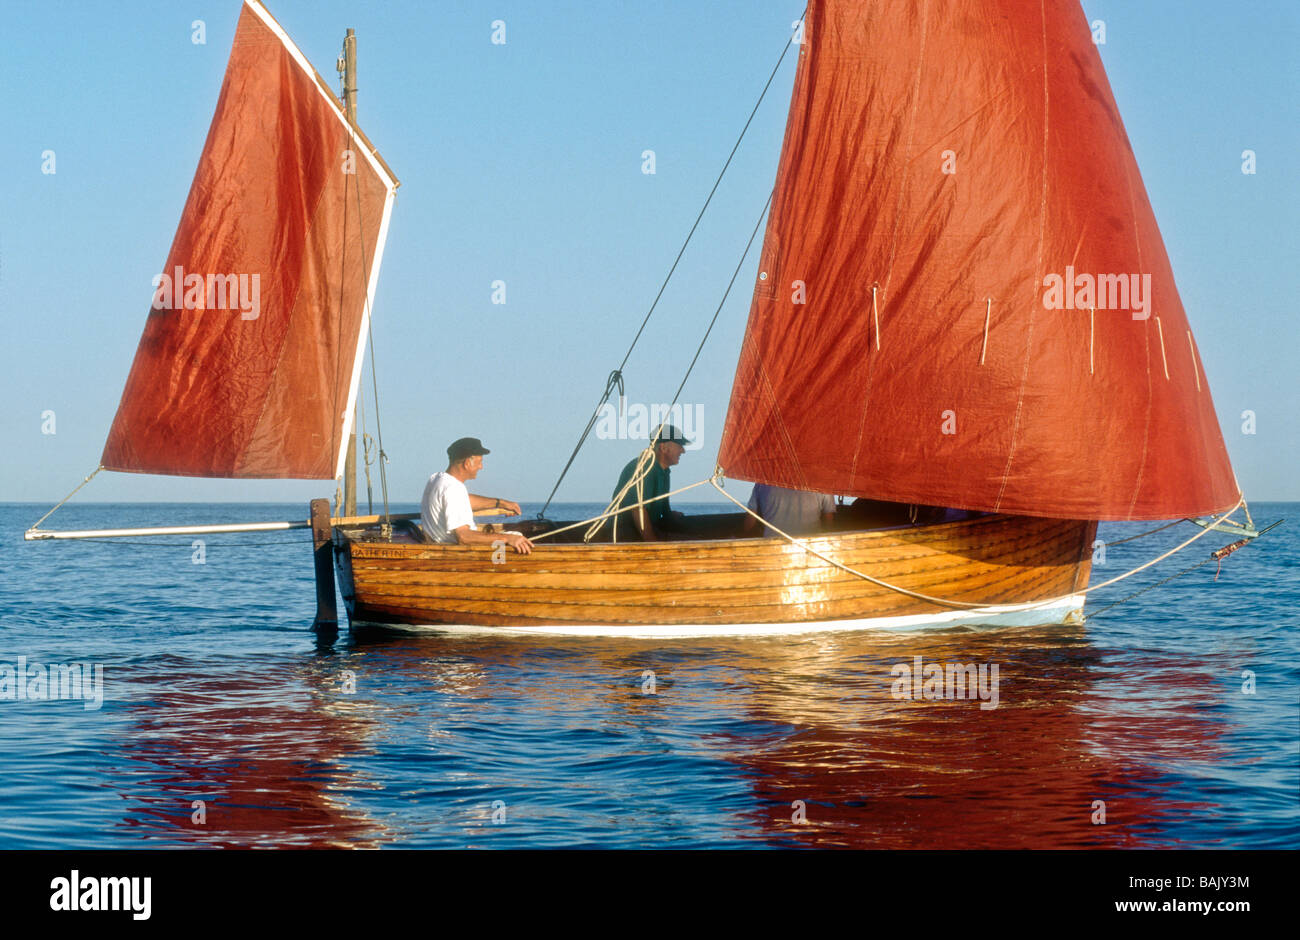 Sailing a Beer lugger boat Devon England UK Europe Stock Photo